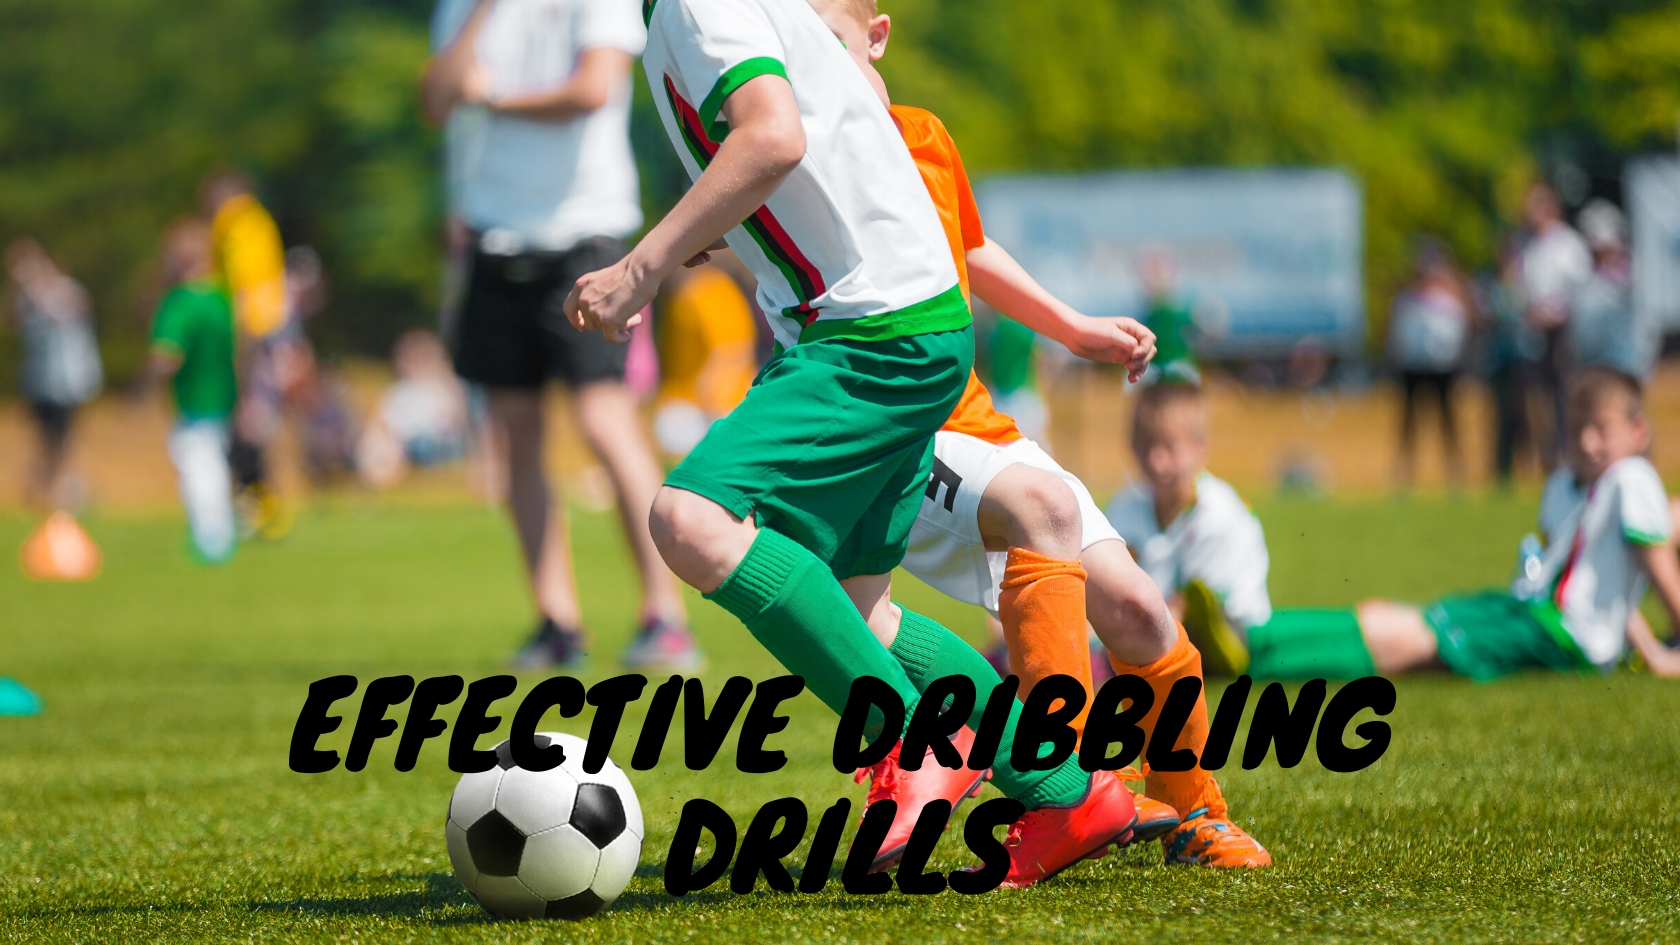 Effective Dribbling Drills